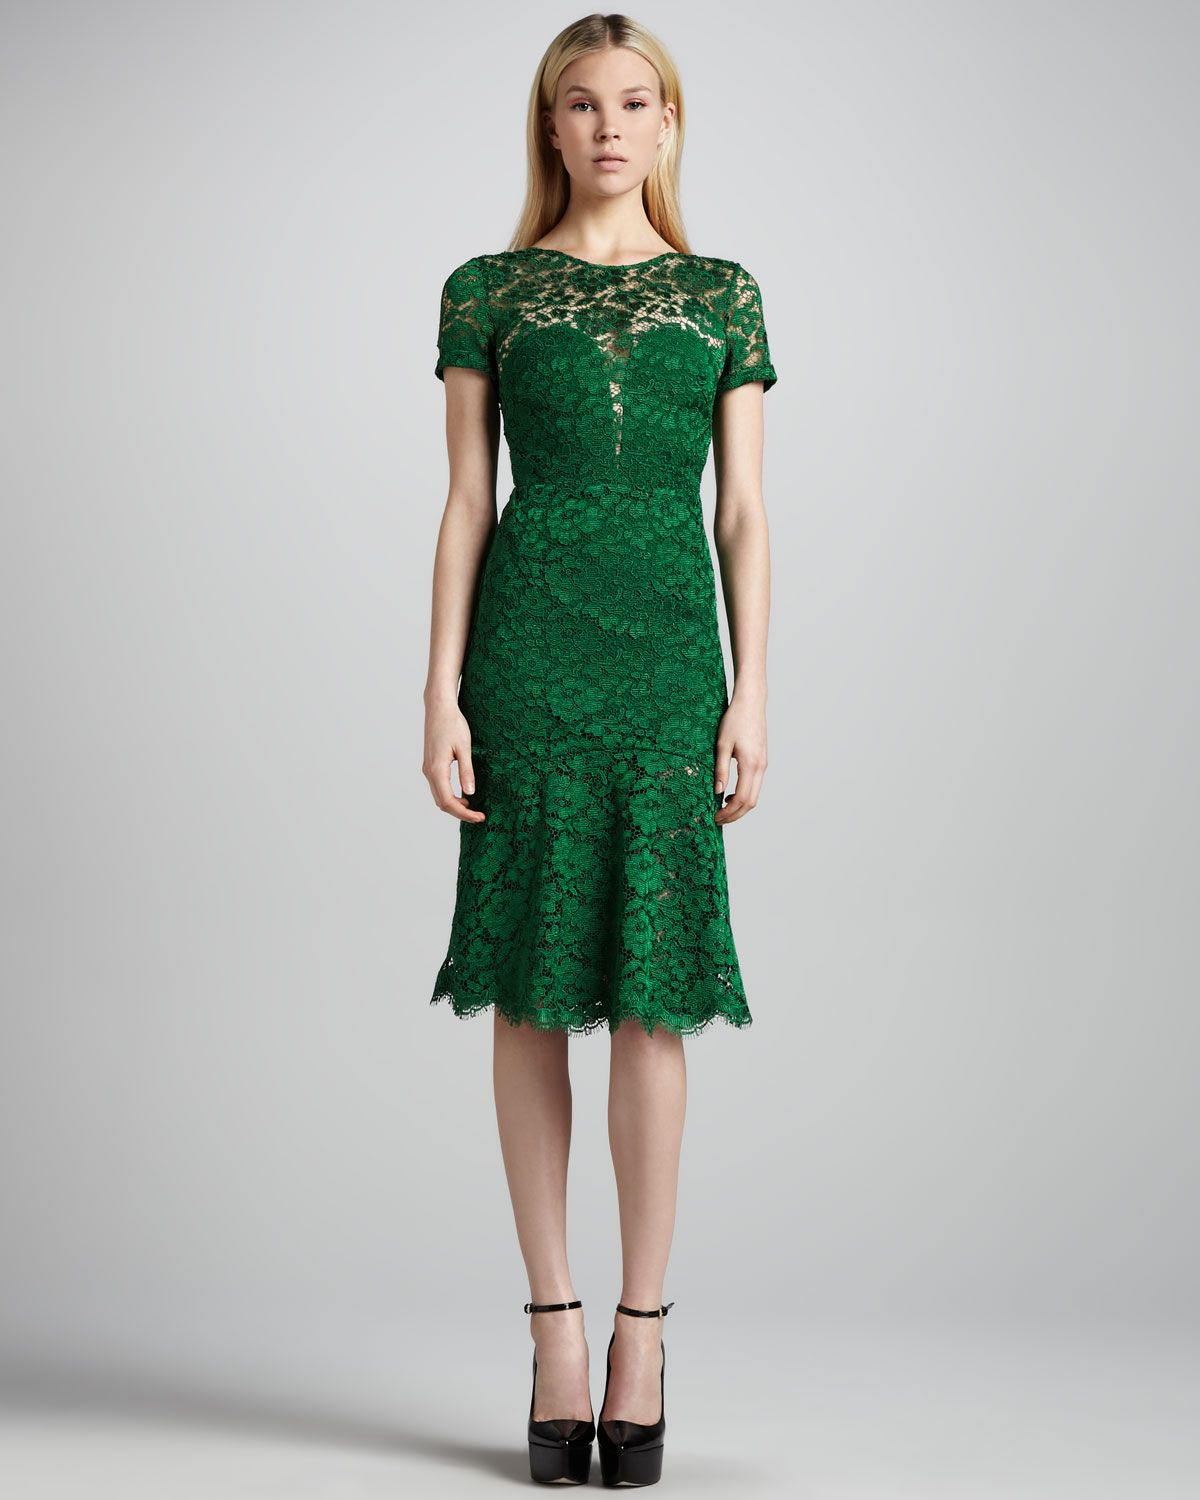 Neiman marcus dresses for weddings  Burberry Prorsum CutoutBack Lace Dress  кружева  Pinterest